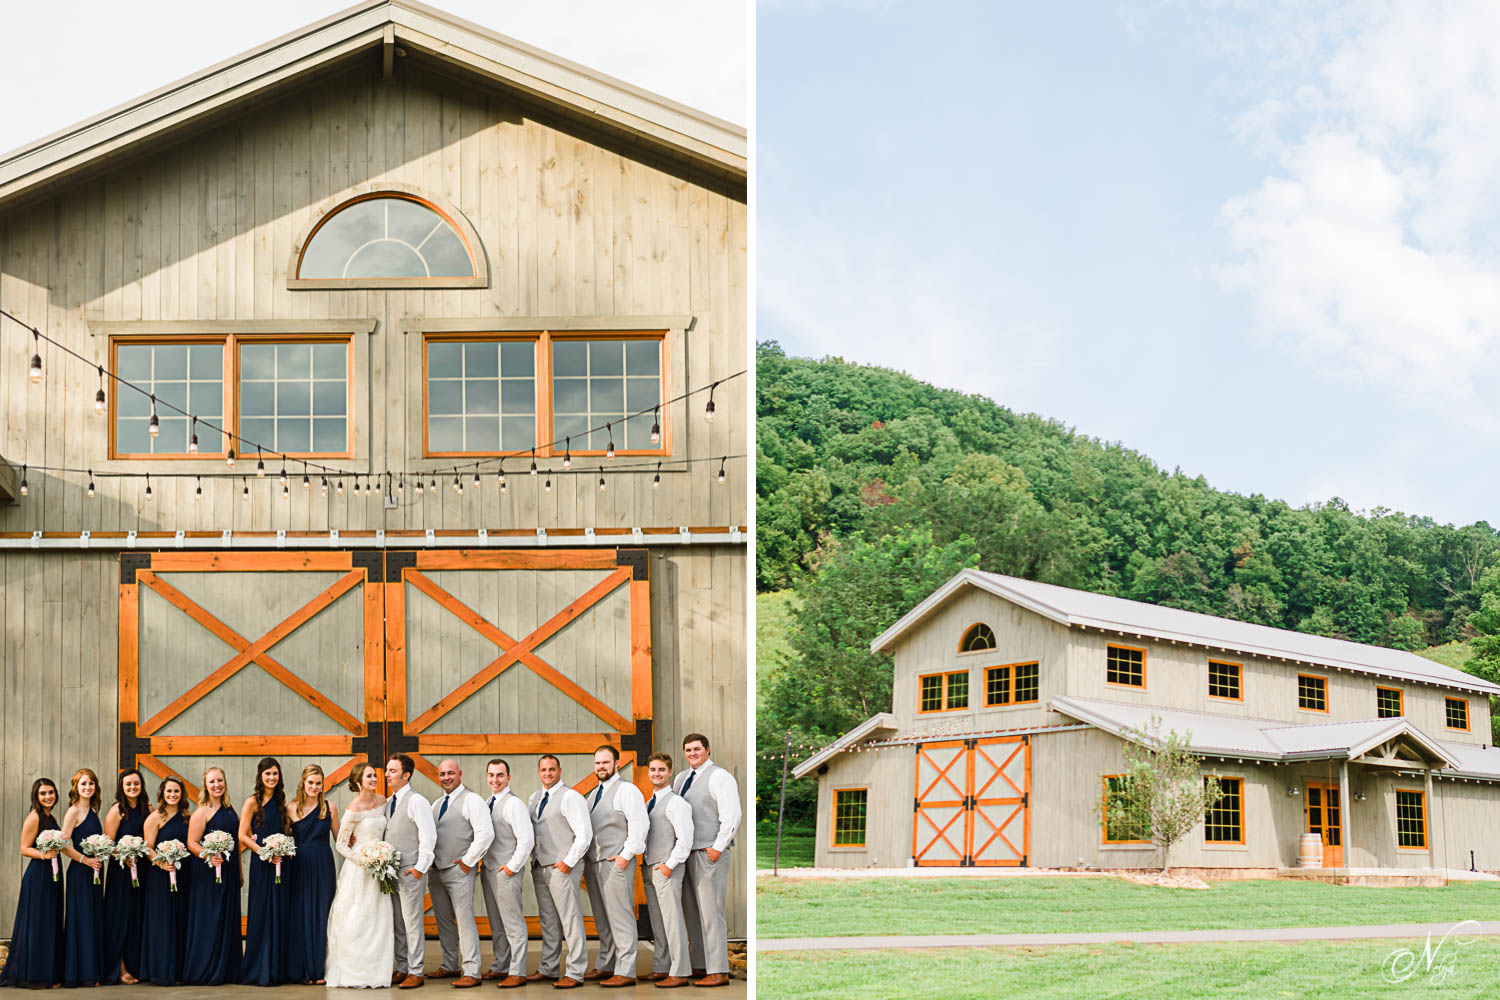 4 points farm wedding party in early september in front of barn. And an exterior view of the venue at 4 Points Farm in Gatlinburg TN